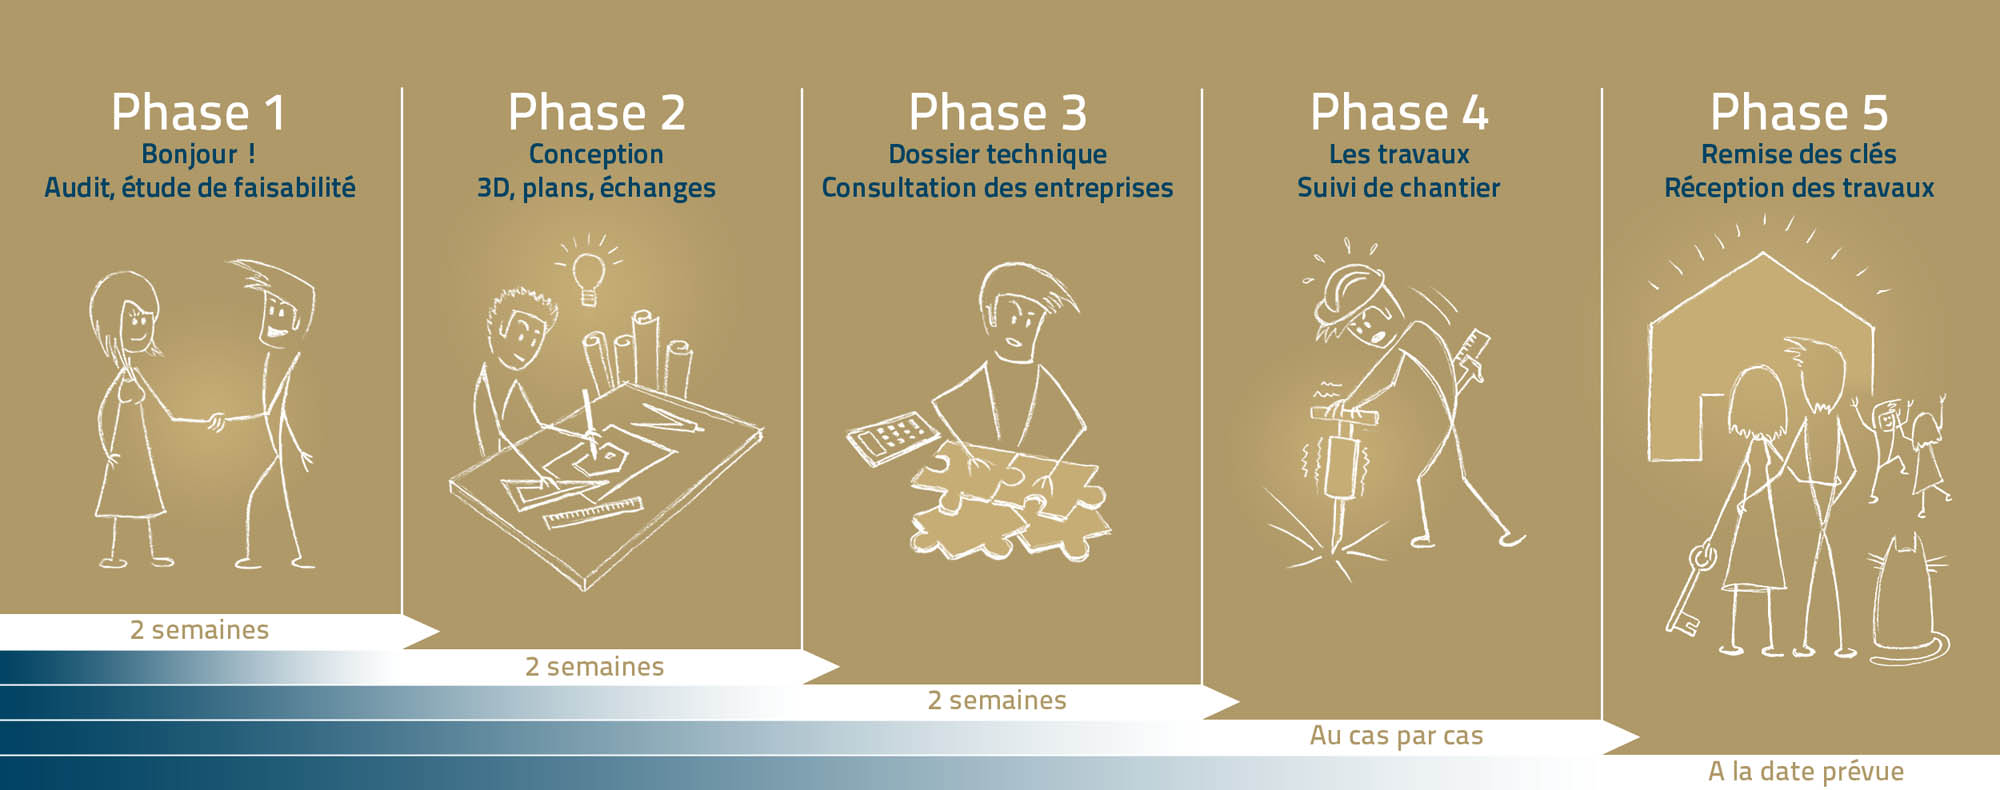 phases projet